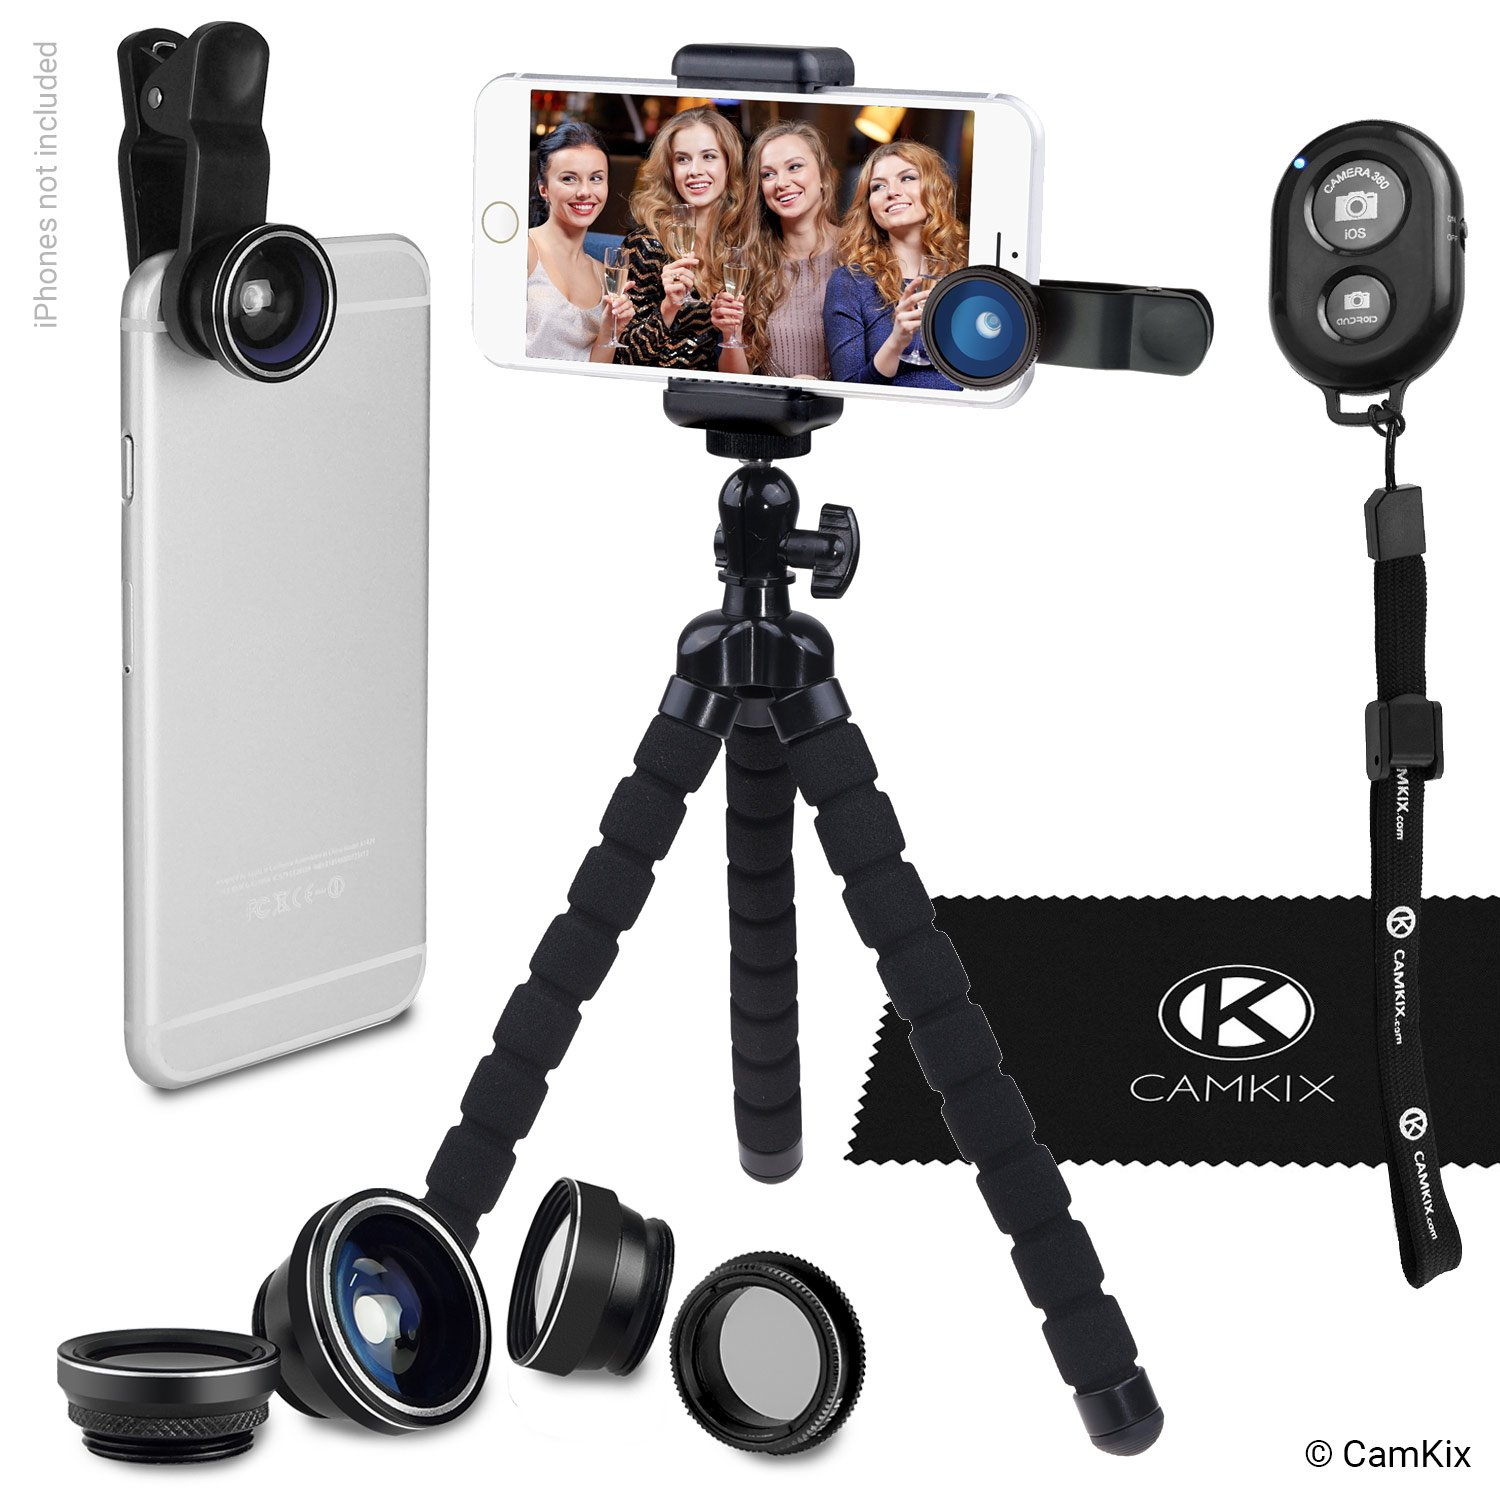 Smartphone Photography Kit - Flexible Cell Phone Tripod, Bluetooth Remote Control Camera Shutter and 5in1 Lens Kit - Universal Octopus Pod - Telephoto, CPL, Fish Eye, Macro and Wide Angle Lens CamKix D0280-ULK-FS5